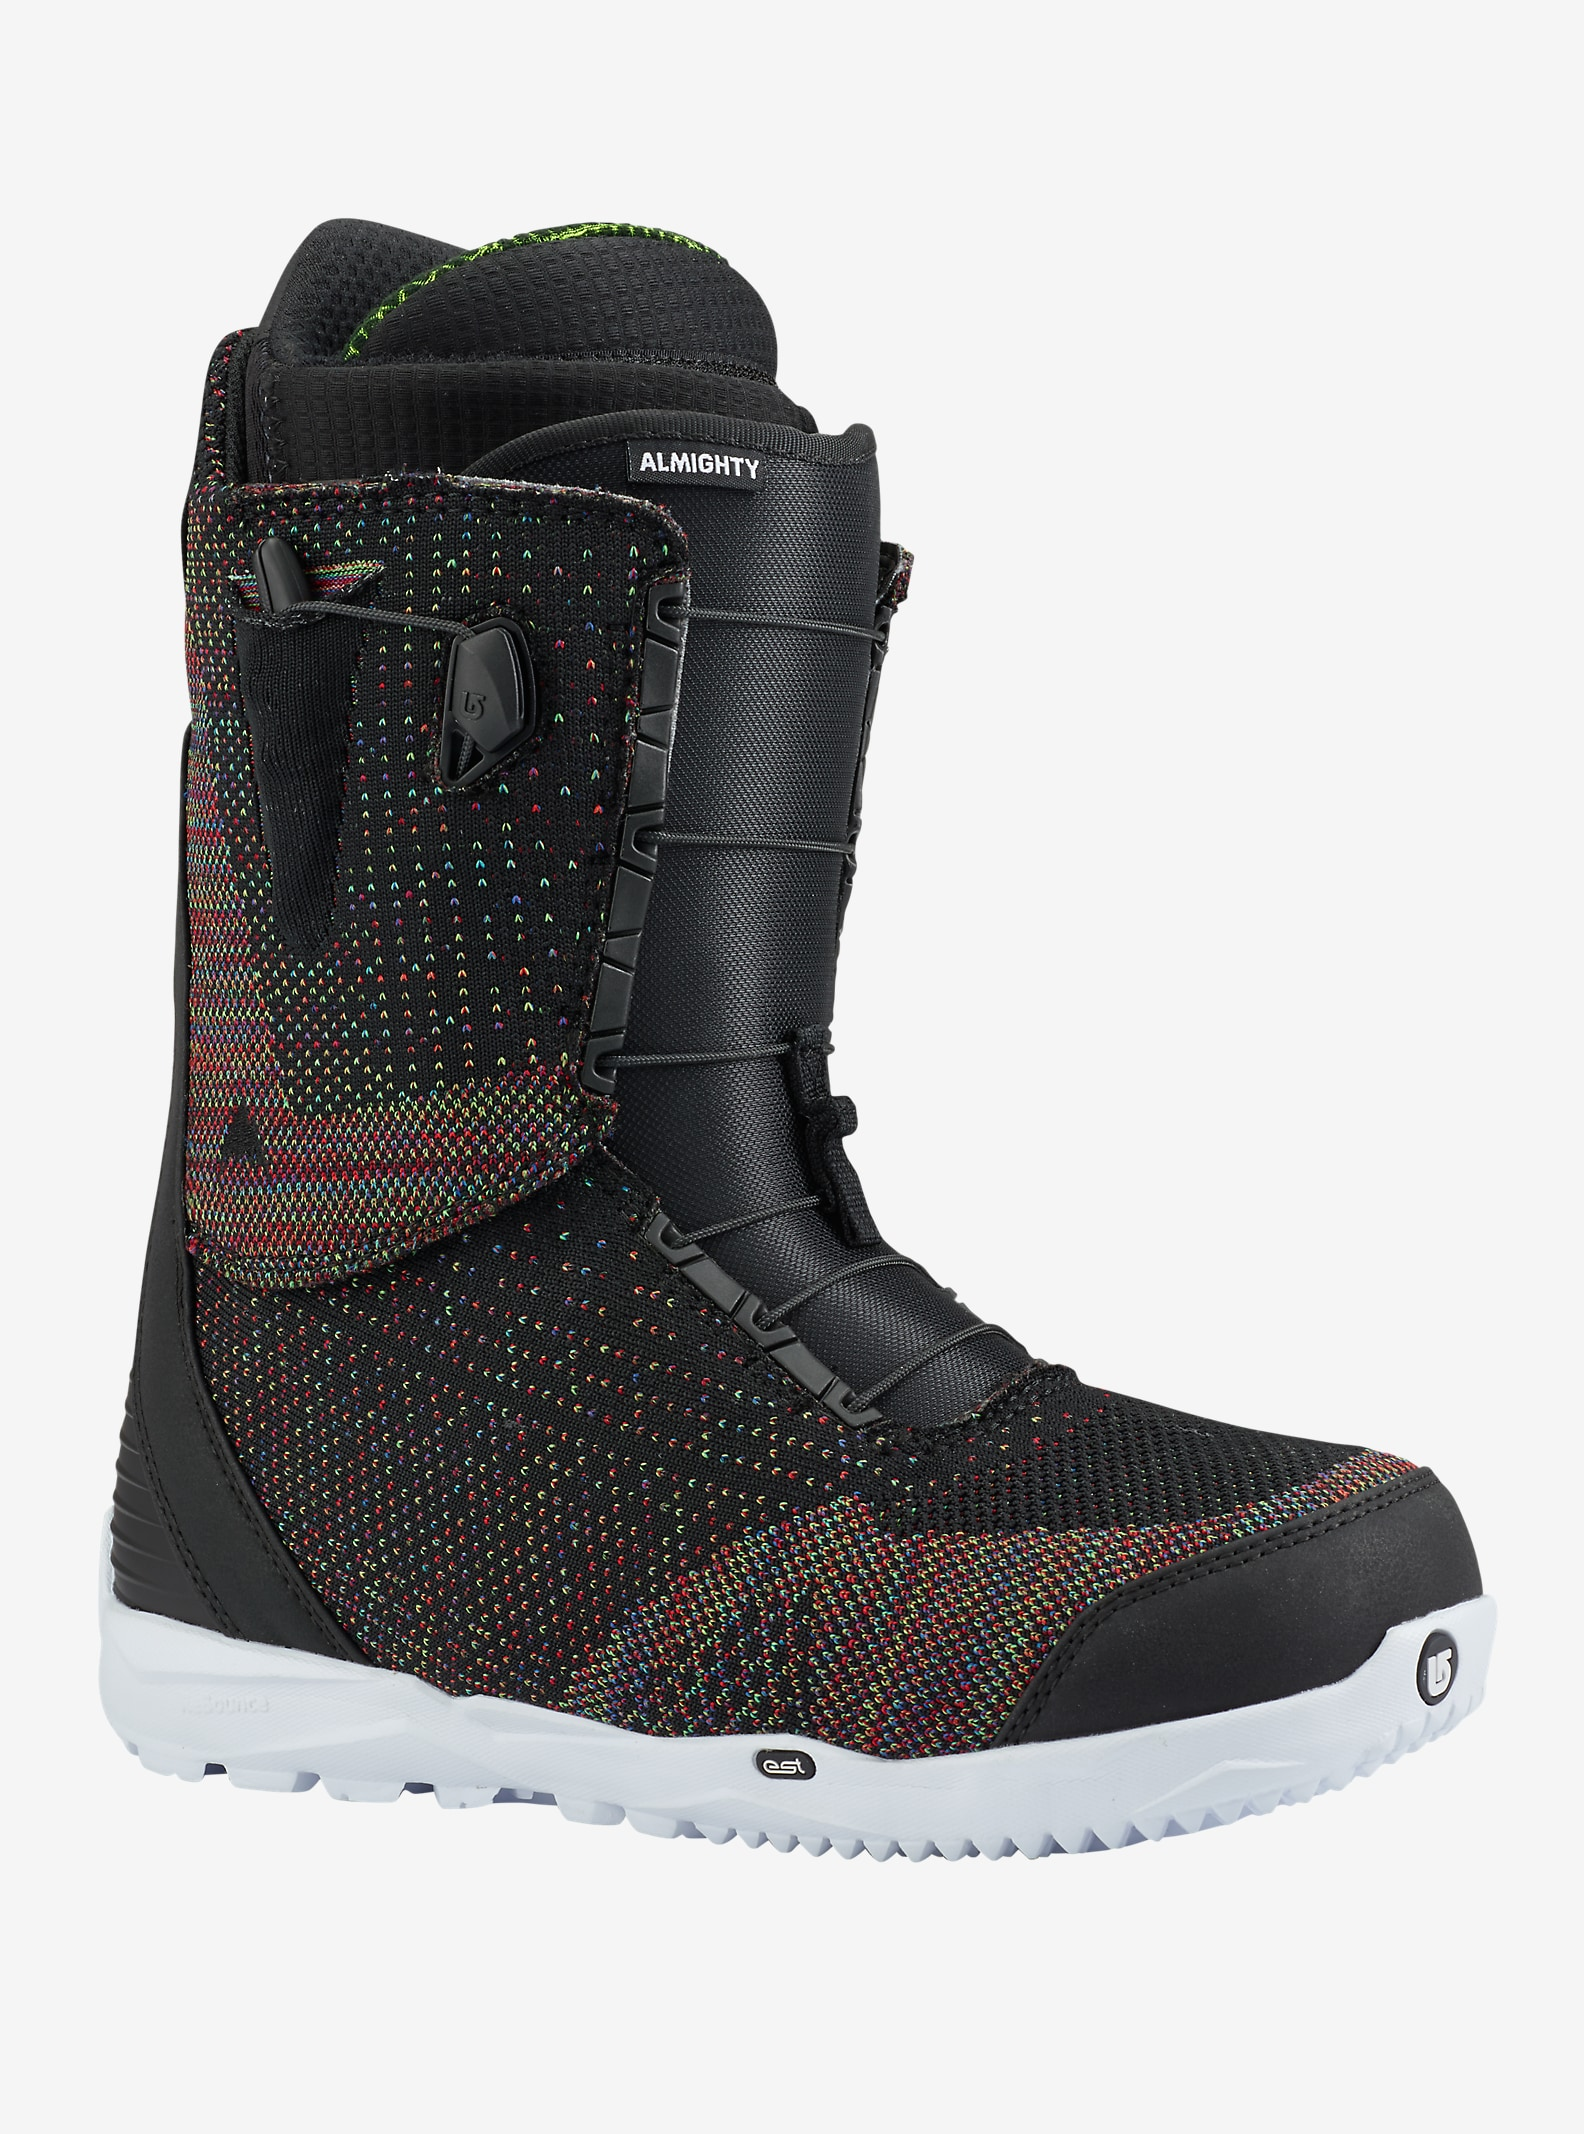 Burton Almighty LTD Snowboardboots angezeigt in Black / Multi